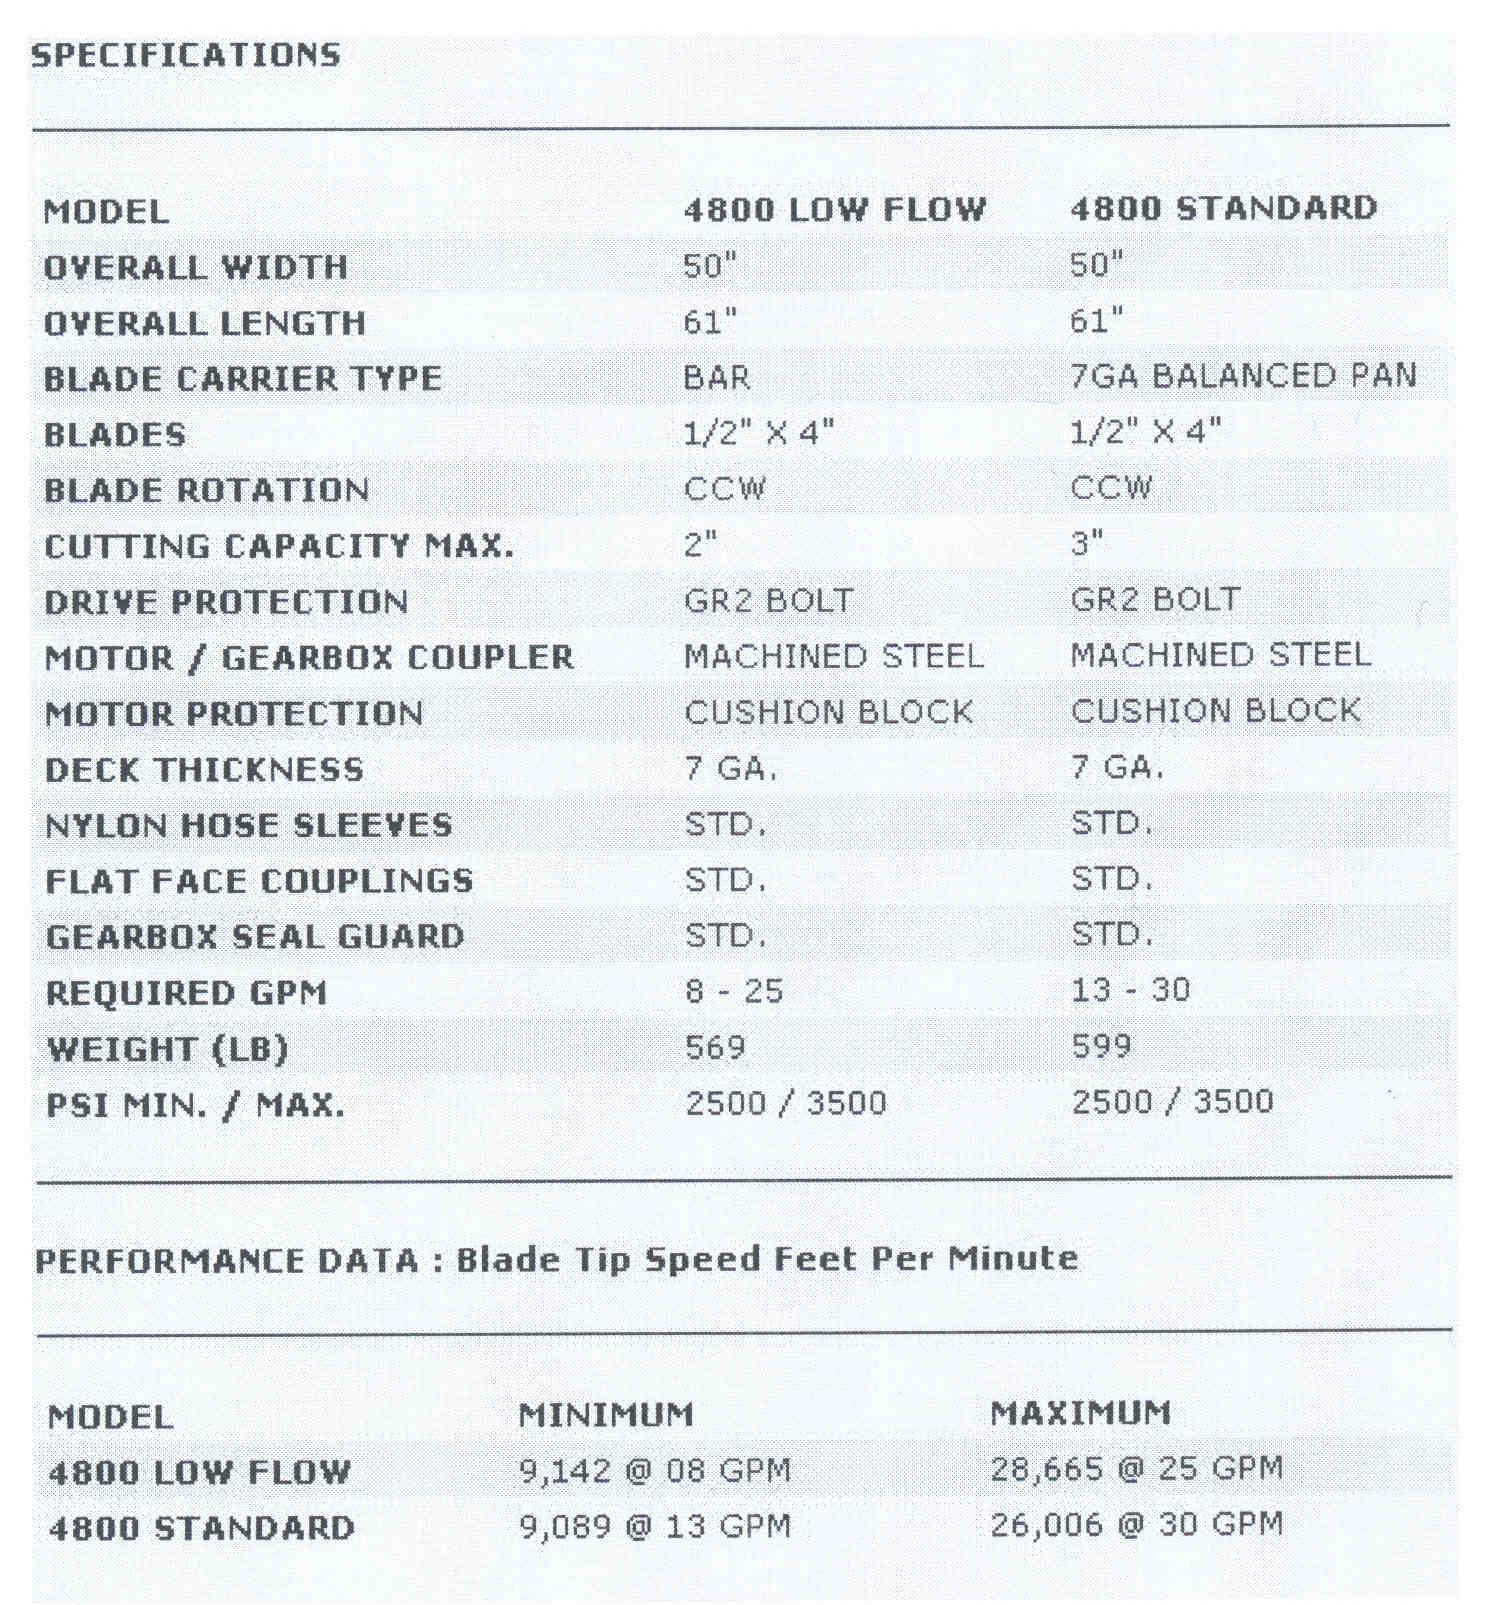 Model 4800 Specifications